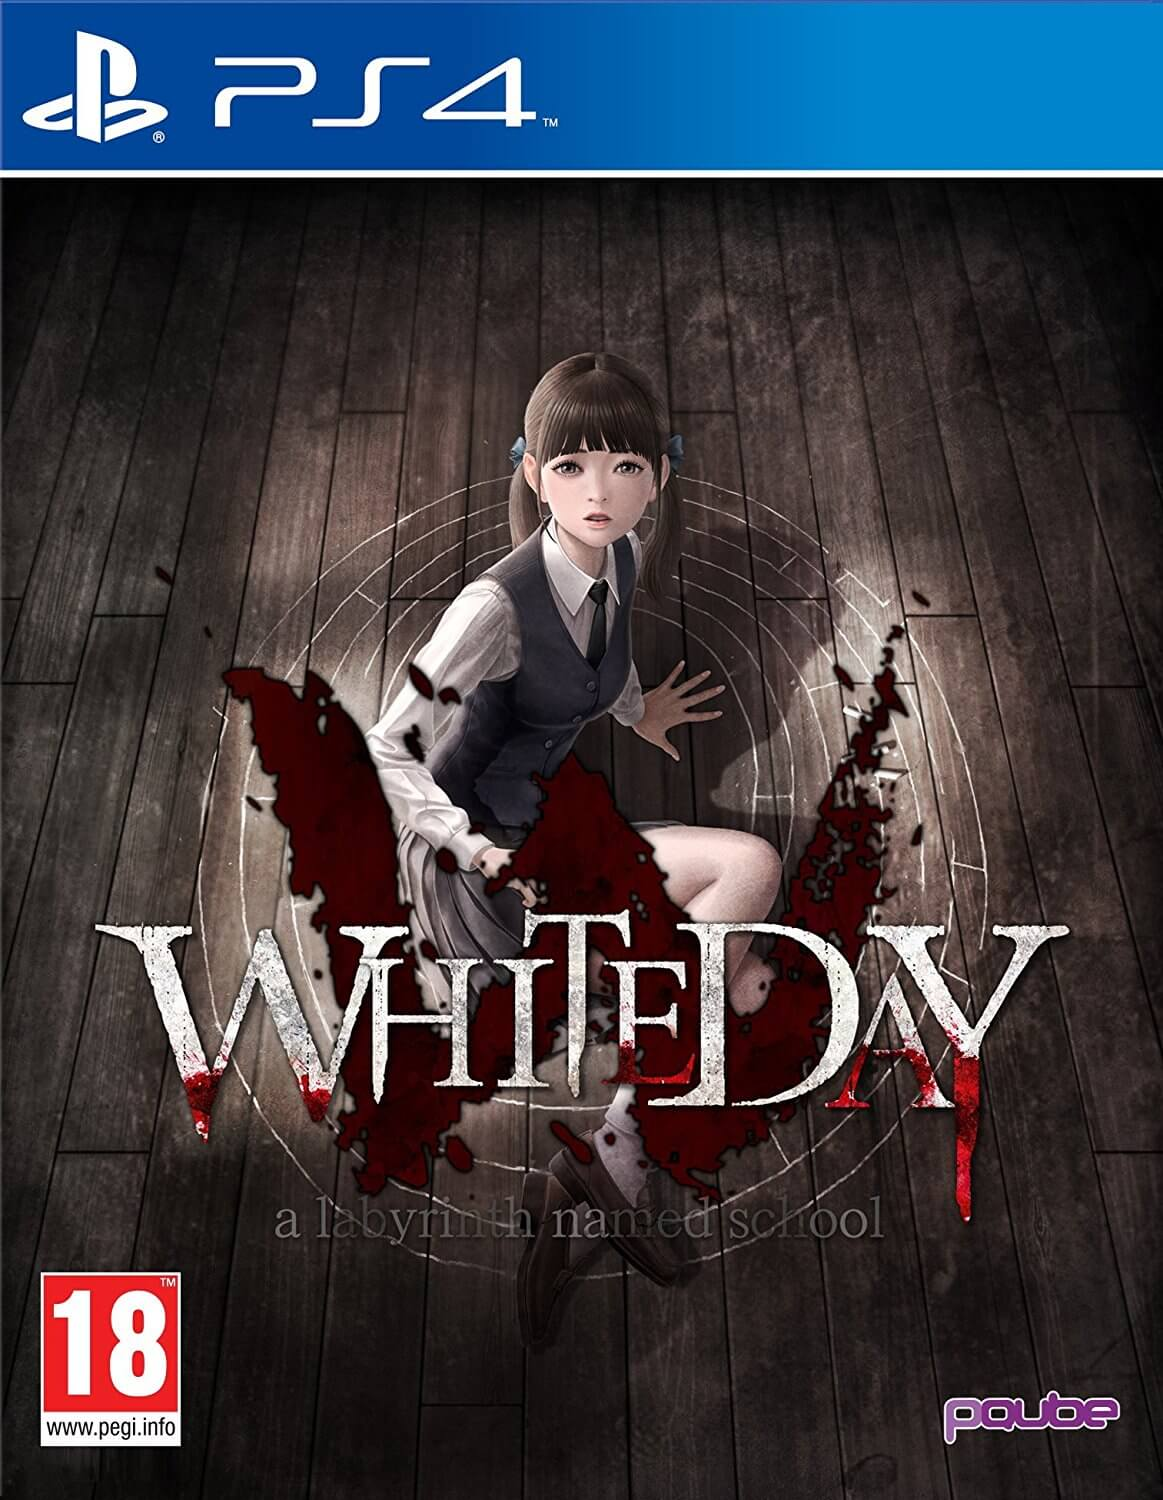 White Day A Labyrinth Named School2 1 - Cult Classic South Korean Horror Game White Day: A Labyrinth Named School Finally Heading West